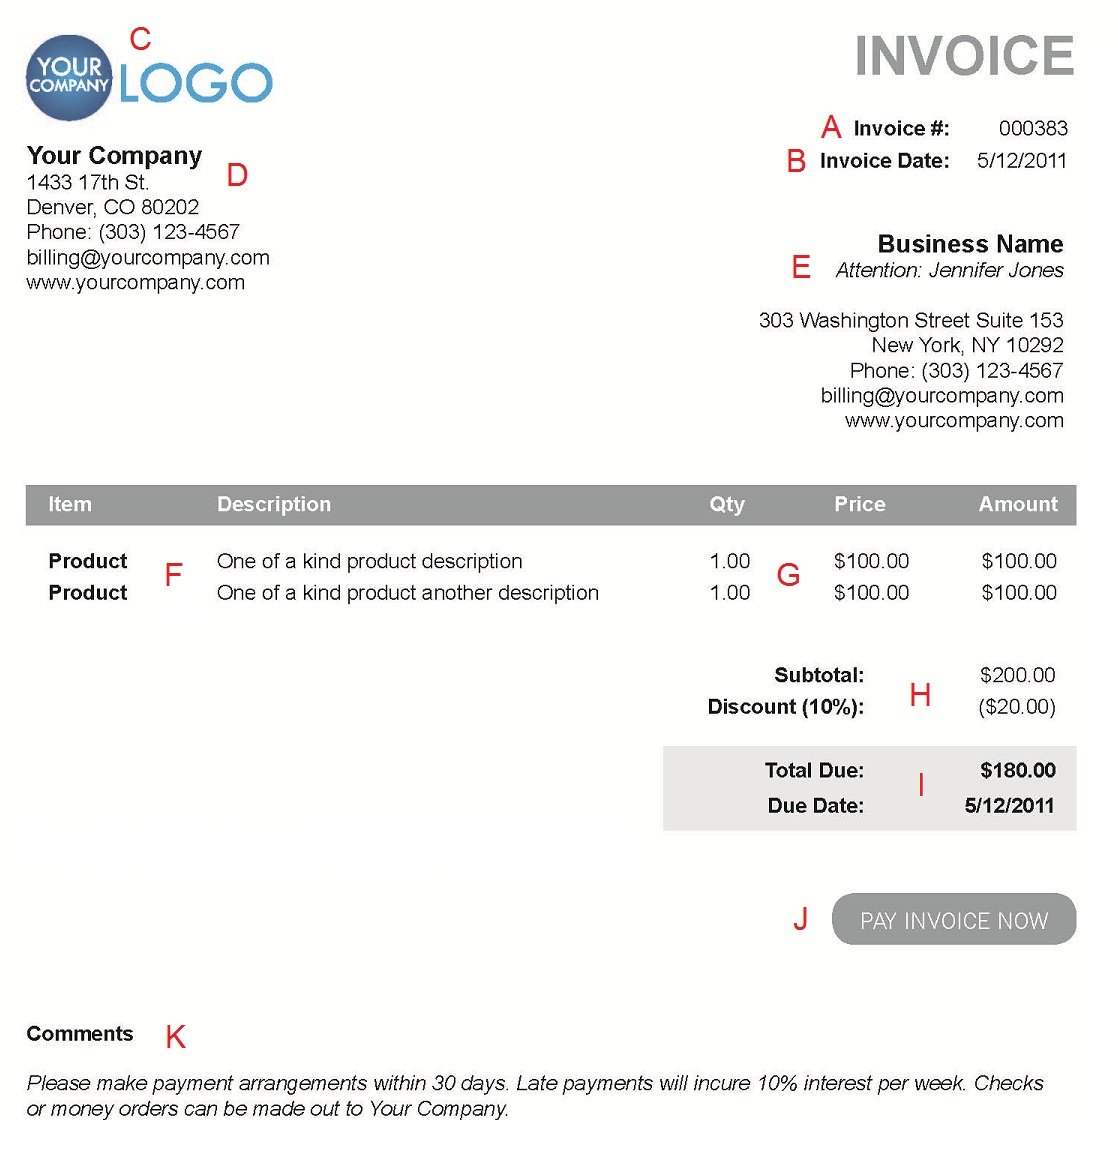 Picnictoimpeachus  Personable The  Different Sections Of An Electronic Payment Invoice With Heavenly A  With Cute Sample Invoices For Consulting Services Also Invoice Software Freeware In Addition Template For Invoice For Services Rendered And Free Download Invoice Template Pdf As Well As Expenses Invoice Additionally Invoice Department From Paysimplecom With Picnictoimpeachus  Heavenly The  Different Sections Of An Electronic Payment Invoice With Cute A  And Personable Sample Invoices For Consulting Services Also Invoice Software Freeware In Addition Template For Invoice For Services Rendered From Paysimplecom